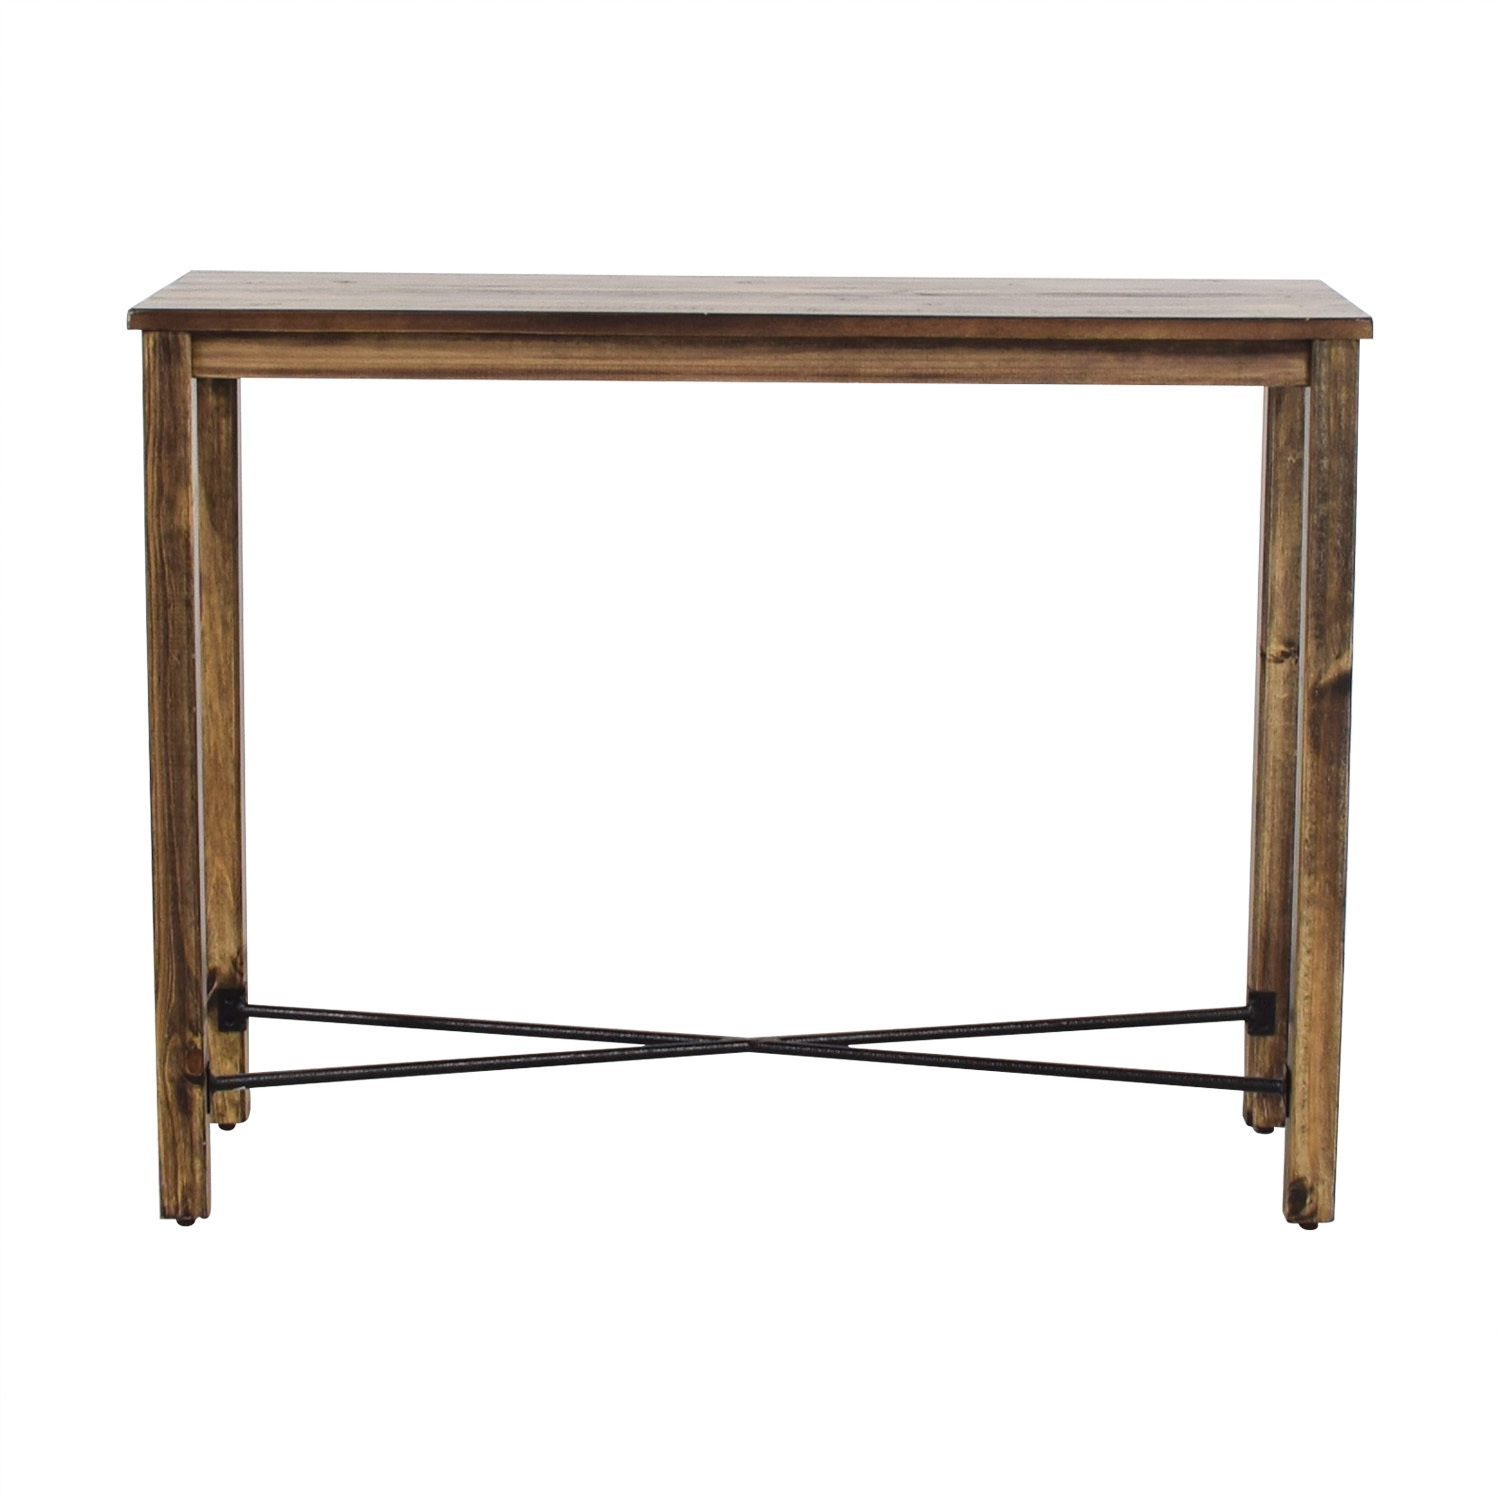 Iron Cross Bar Distressed Hardwood Console Table for sale